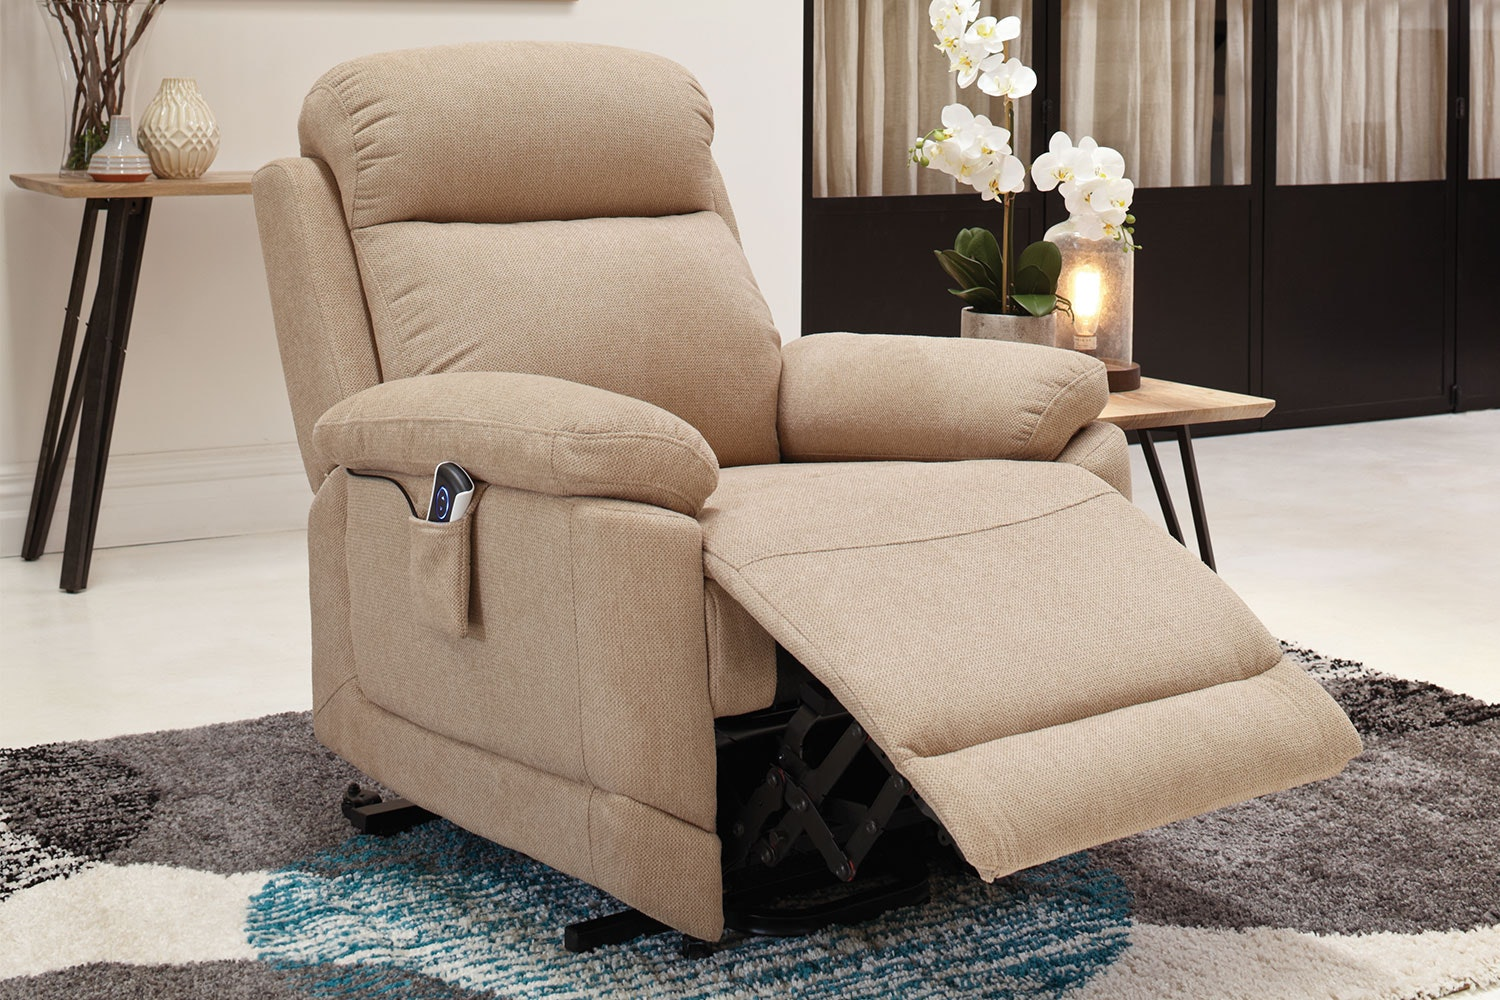 Flicker Fabric Lift Chair by Garry Masters